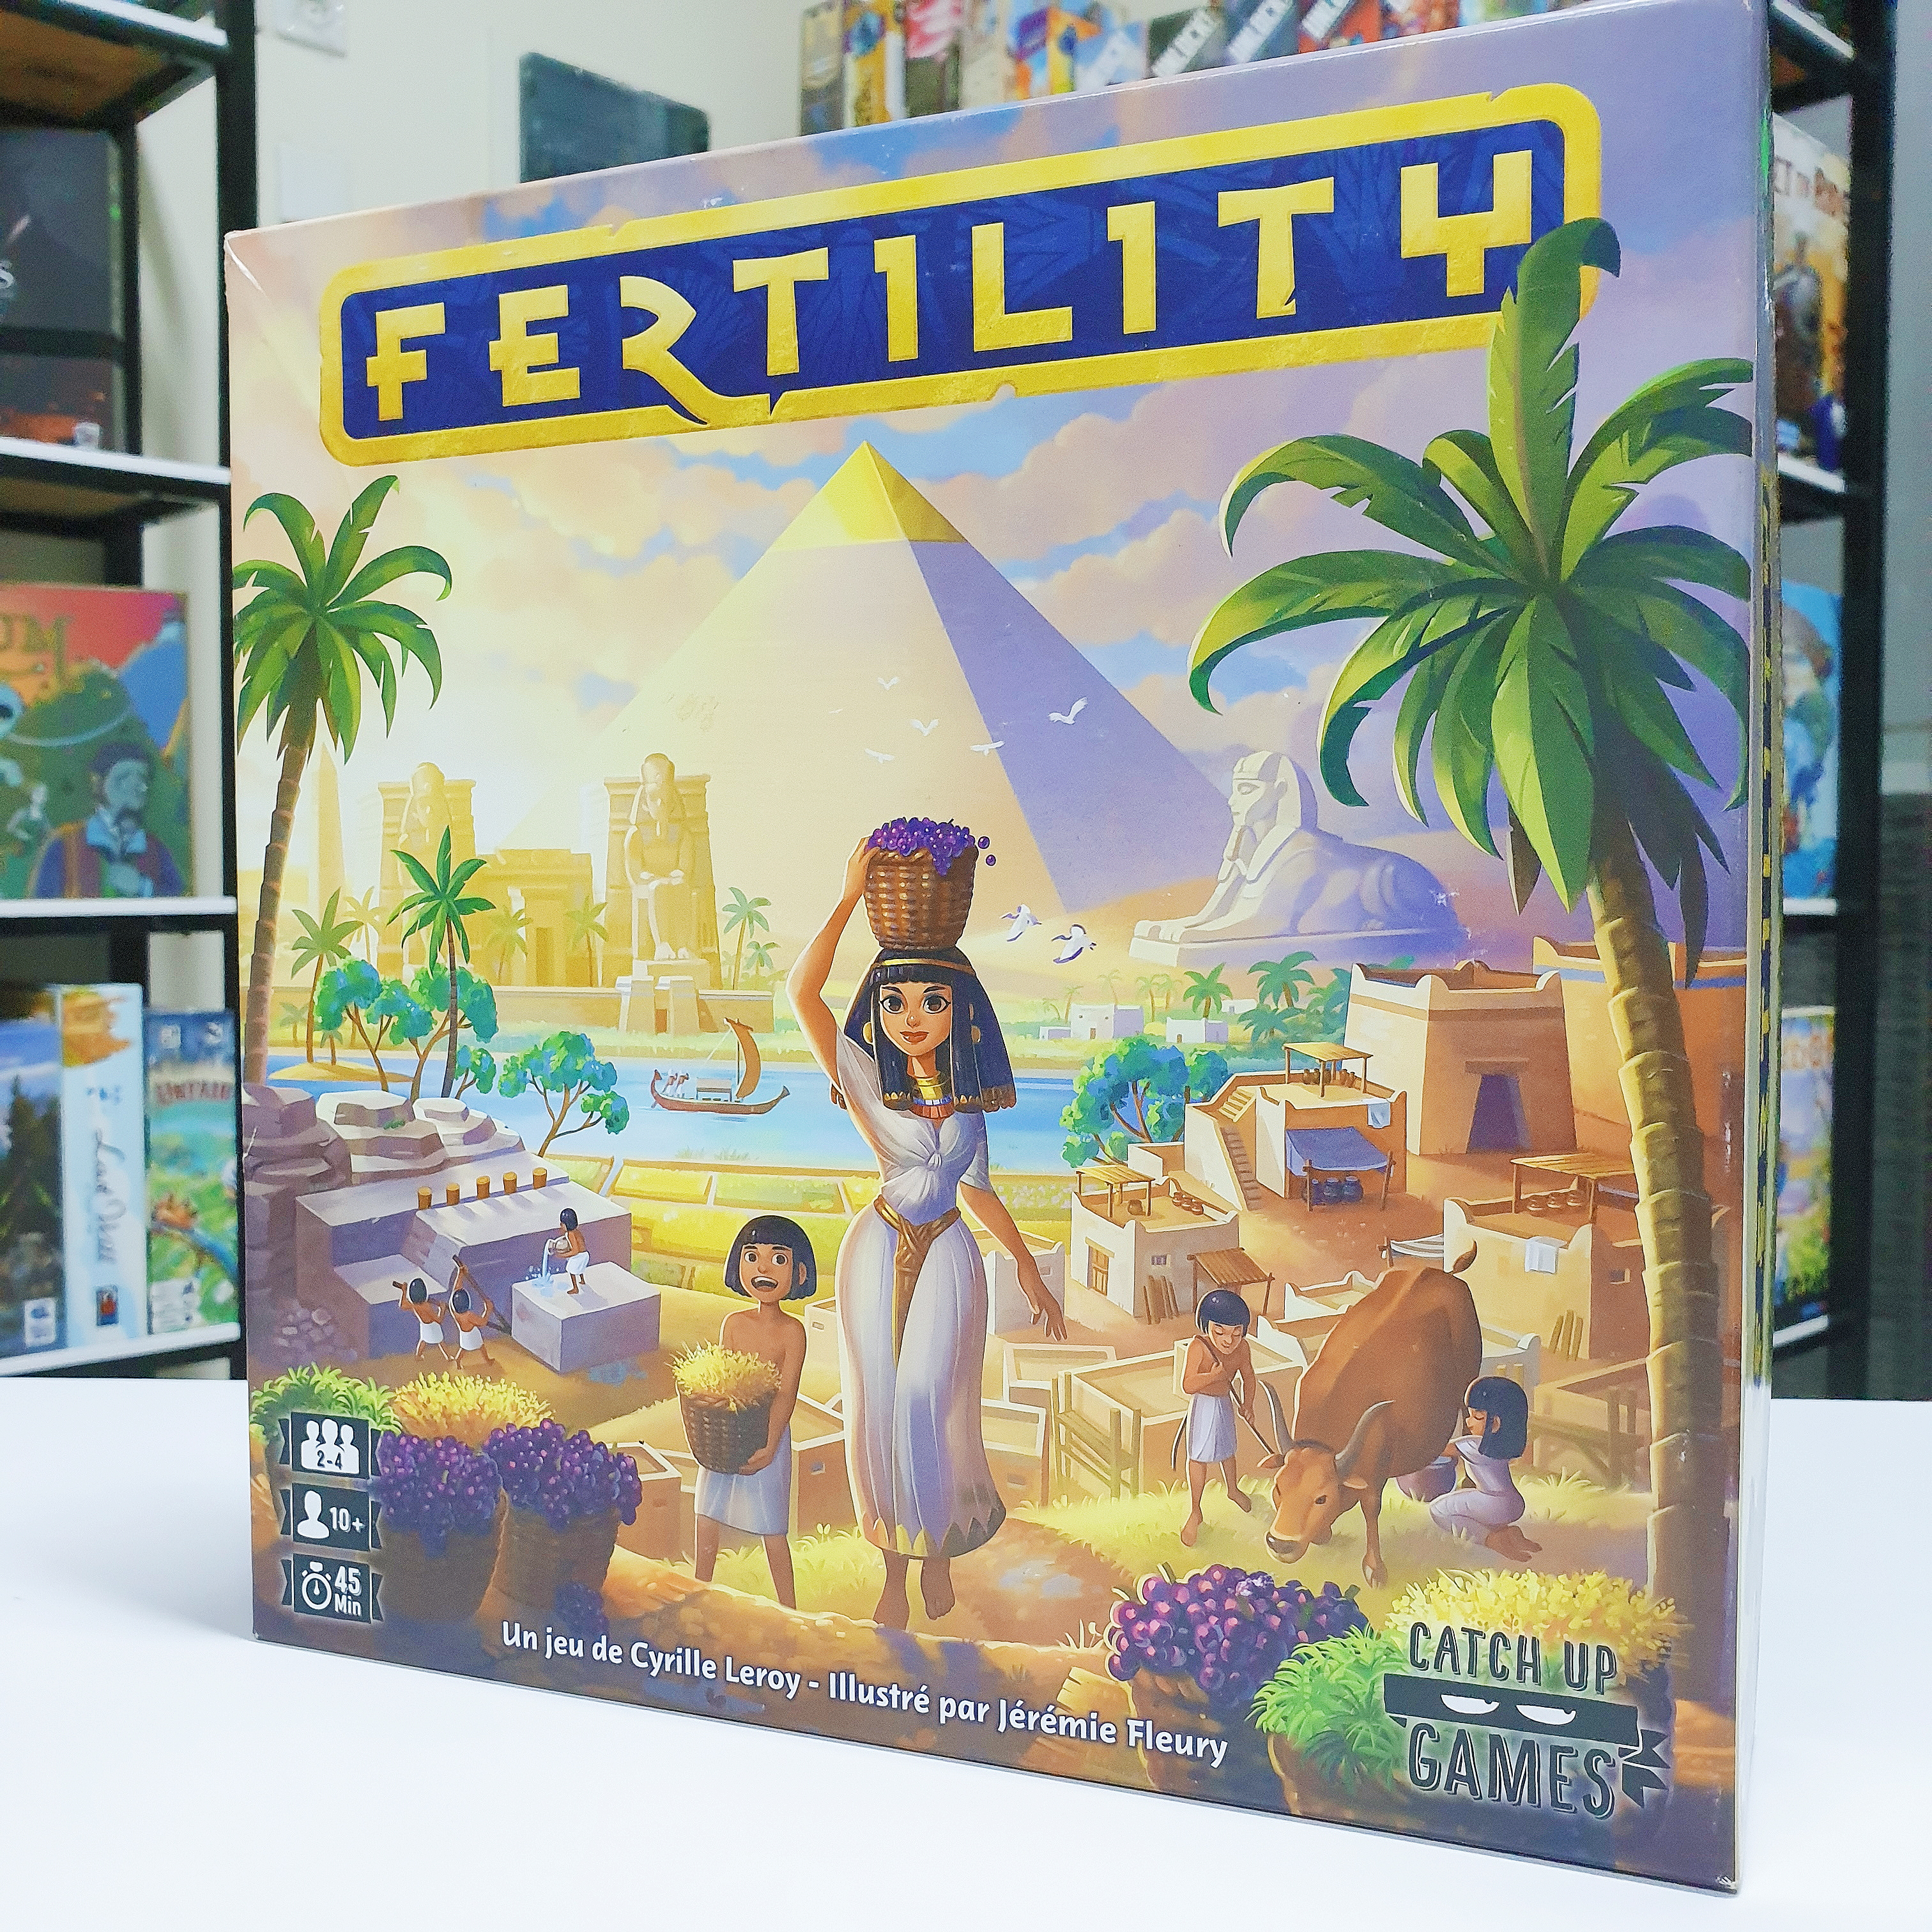 Fertility: Build the best Metropolis along the Nile [Review]